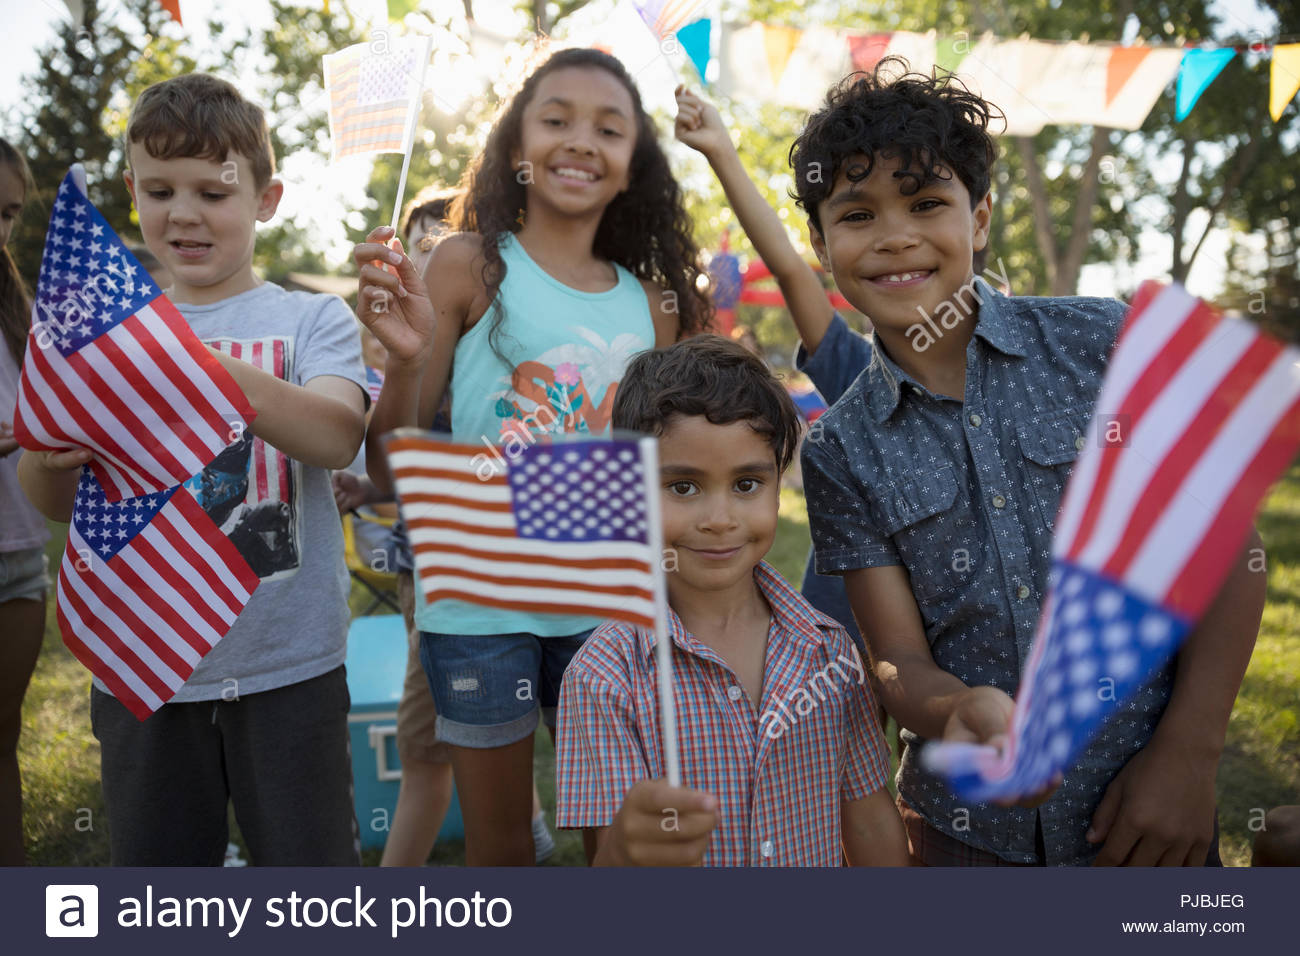 Portrait kids waving 4th of July American flags in park - Stock Image